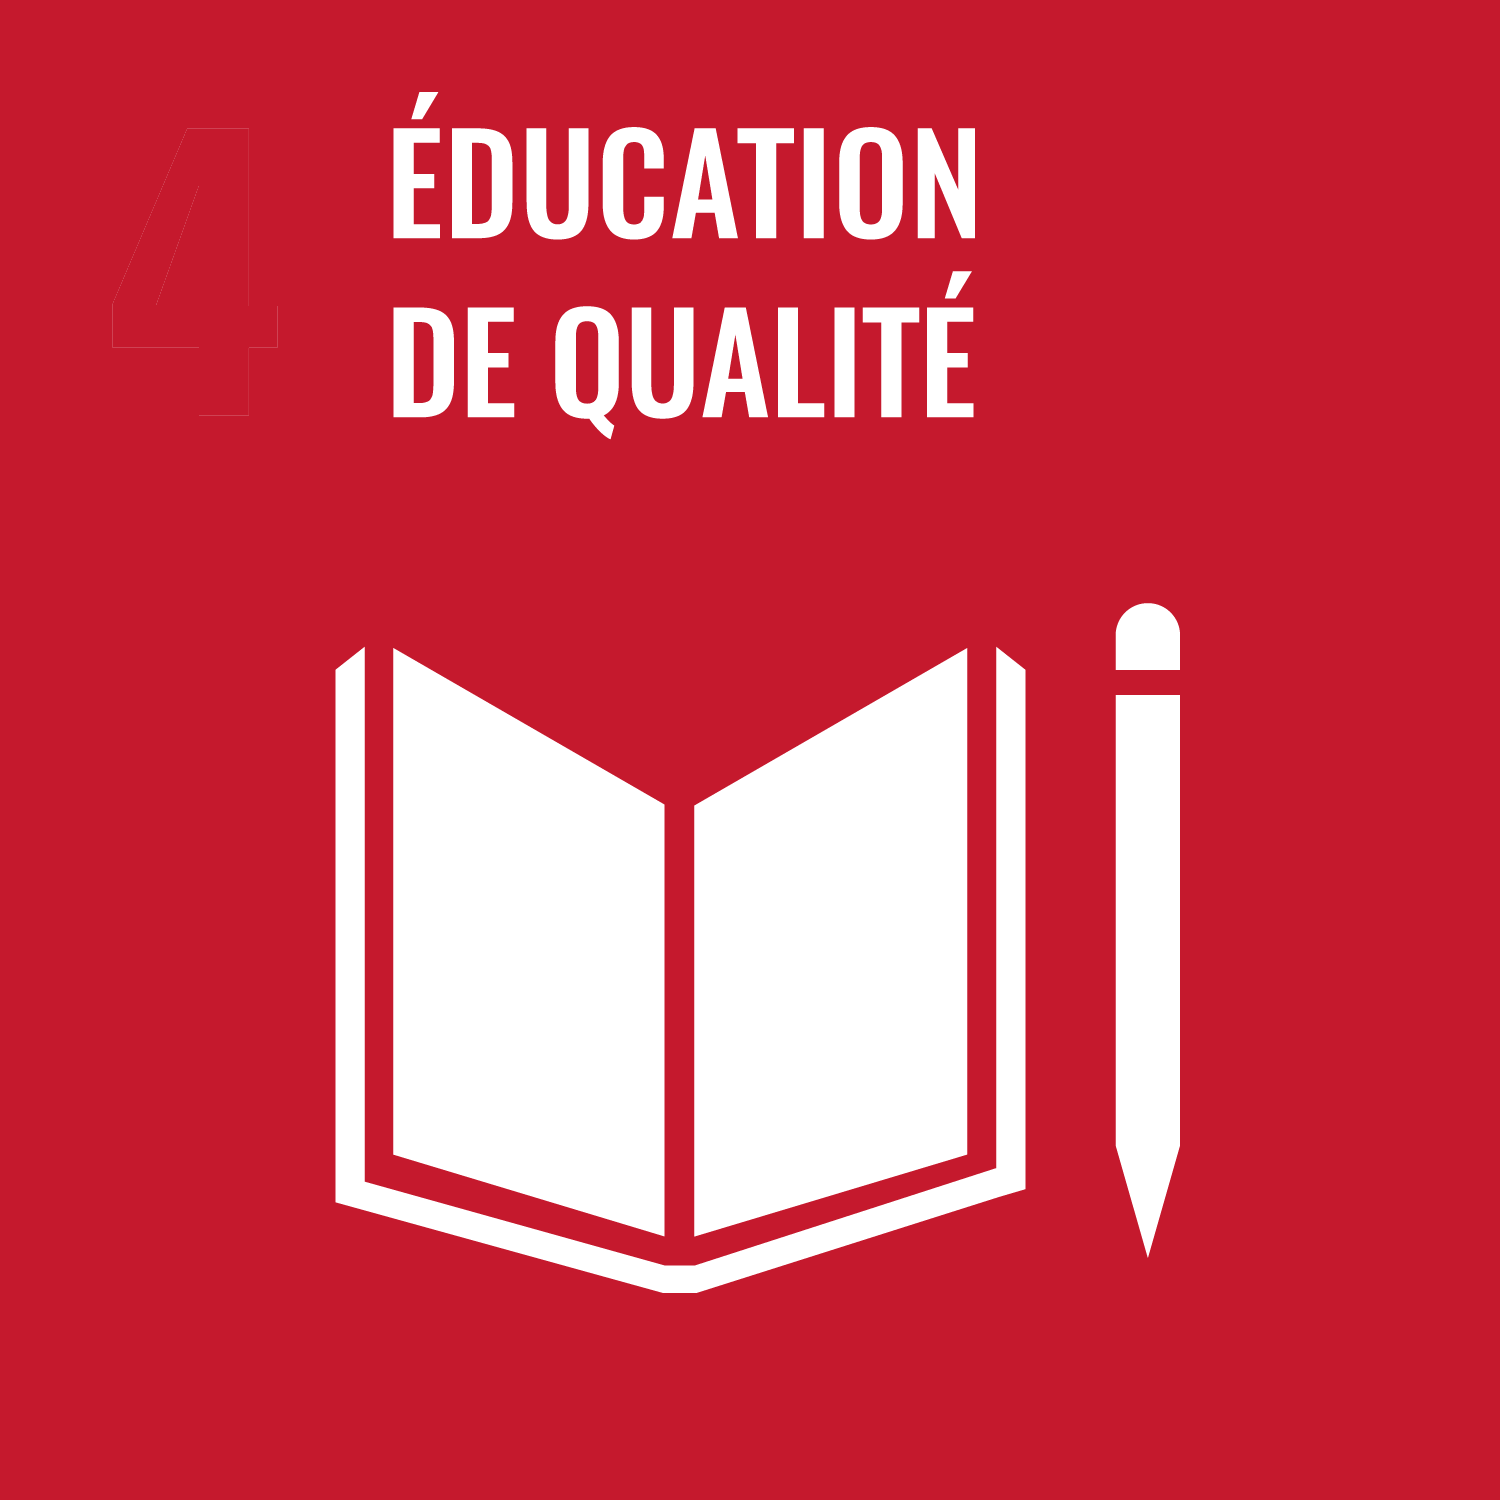 Education de qualité